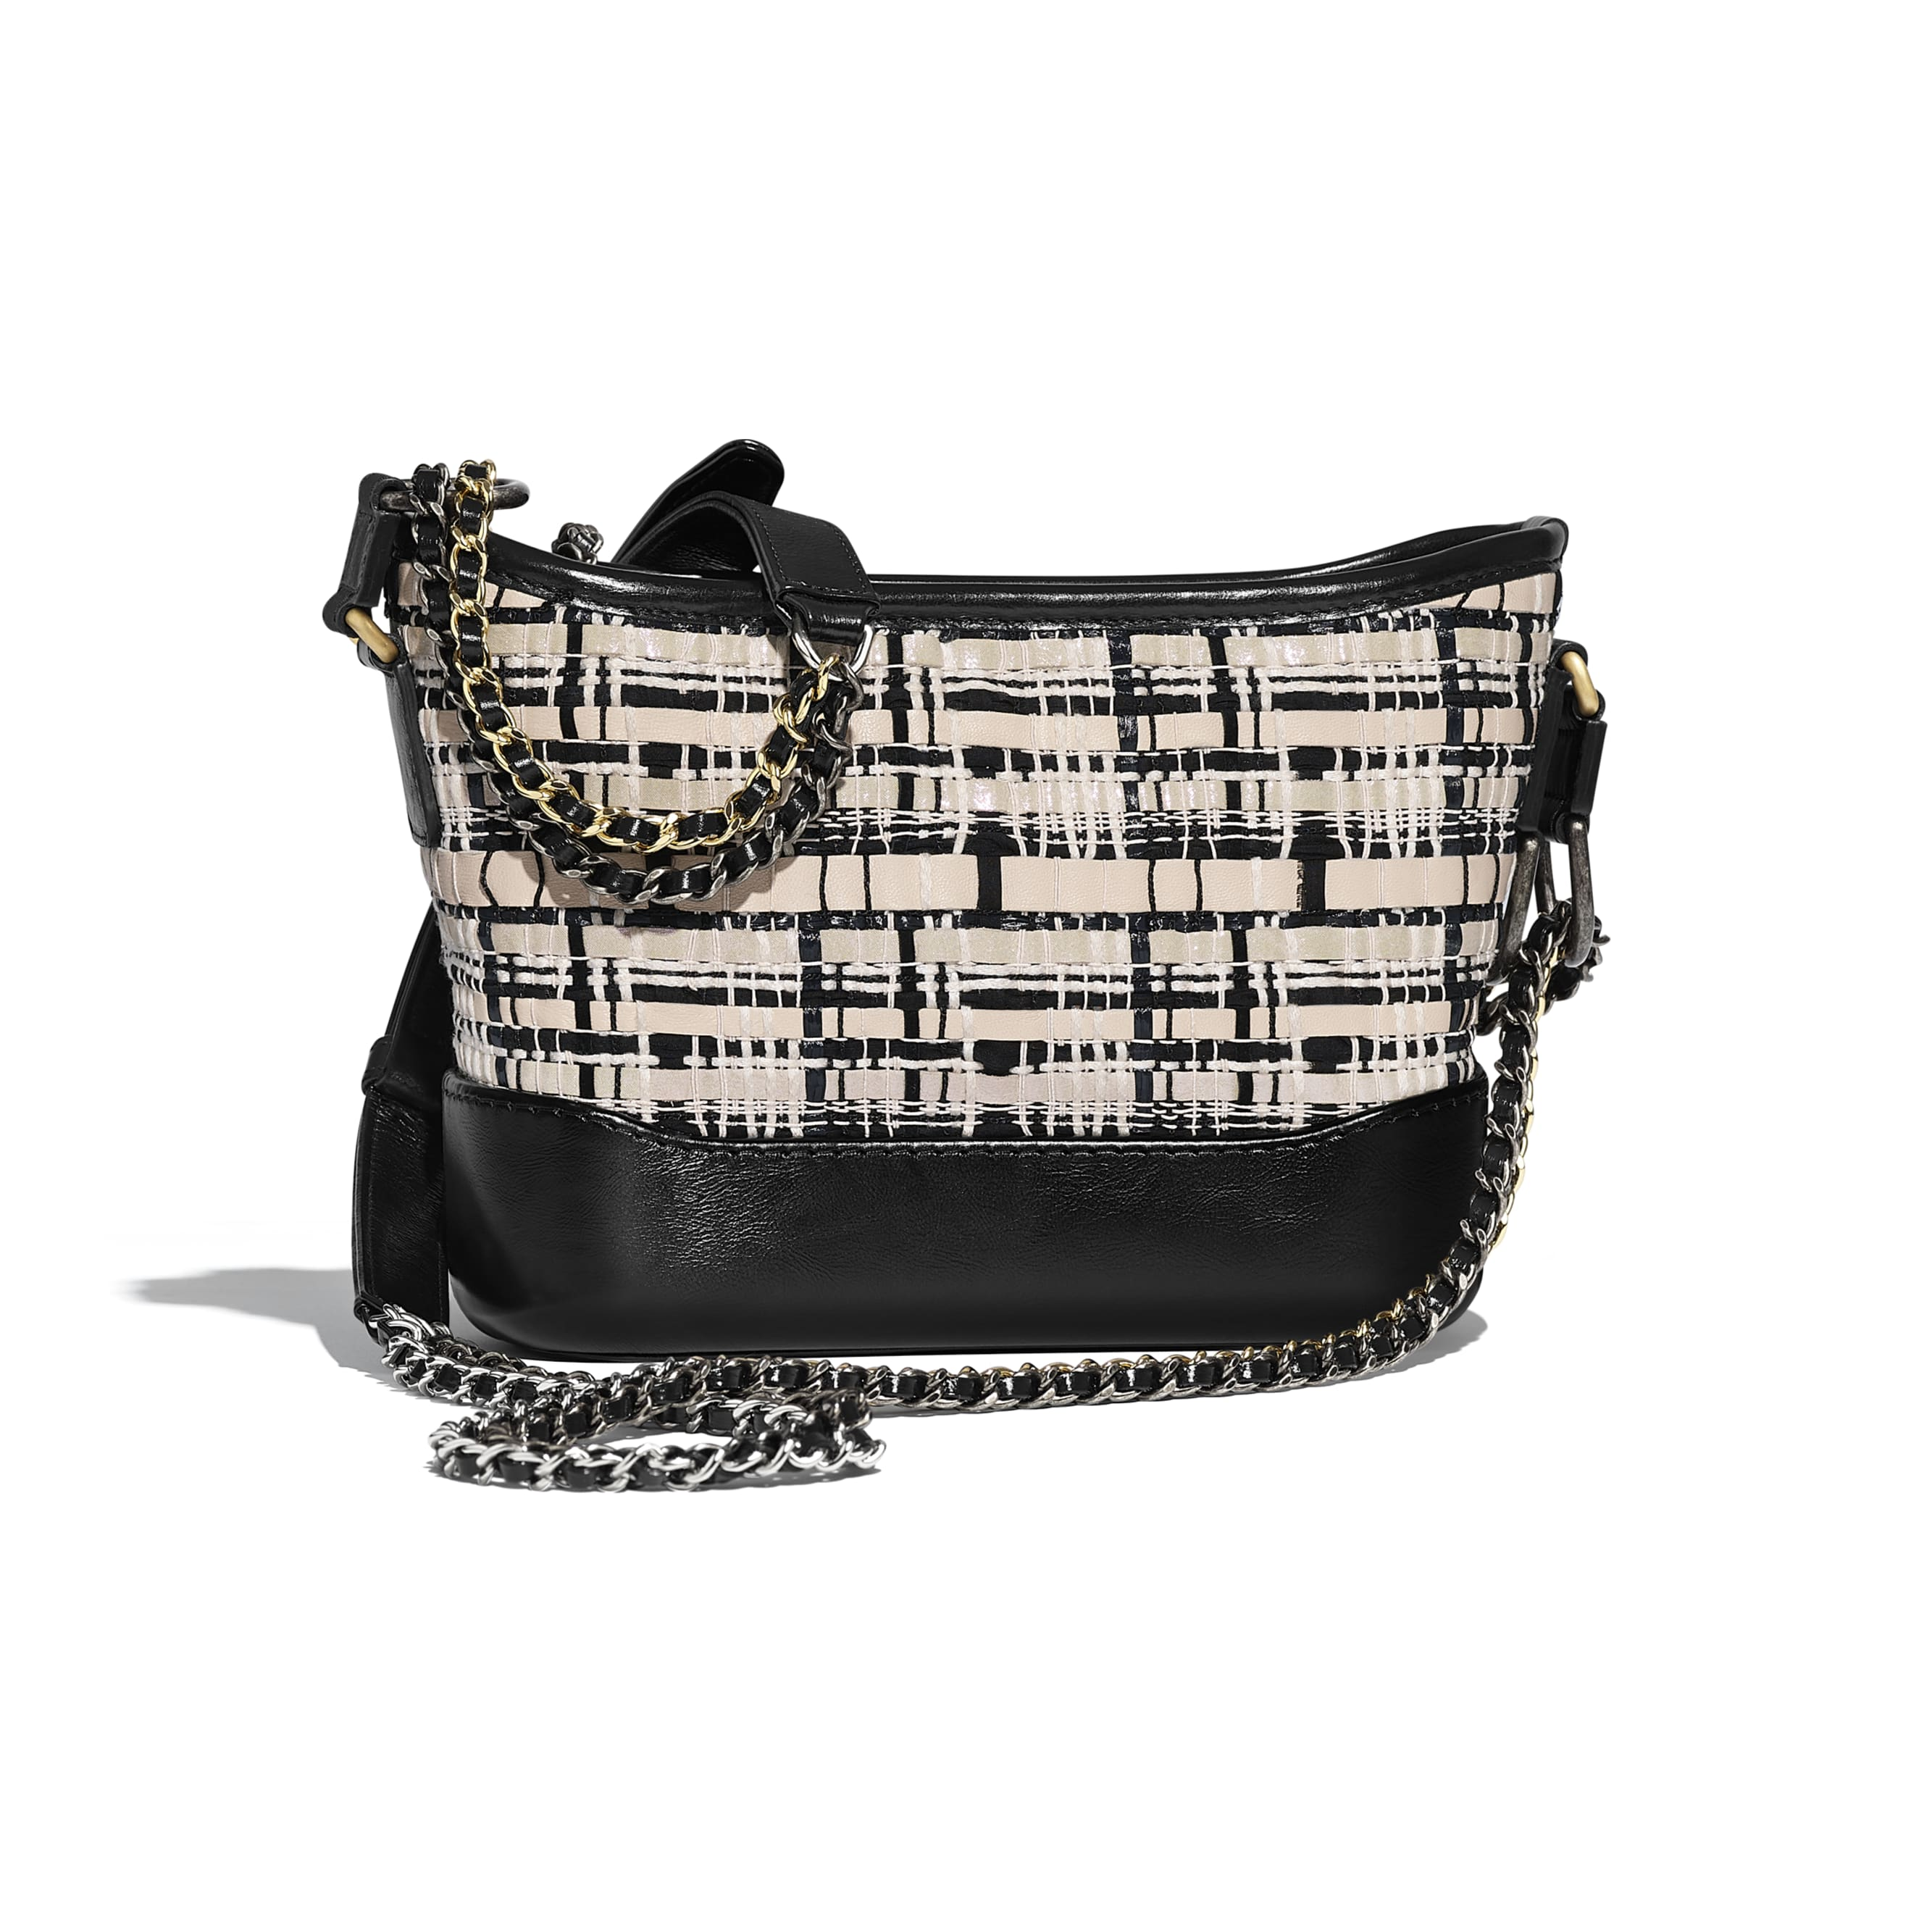 CHANEL'S GABRIELLE Small Hobo Bag - Black & Light Beige - Lambskin, Calfskin, Viscose Weaving & Gold-Tone Metal - Alternative view - see standard sized version